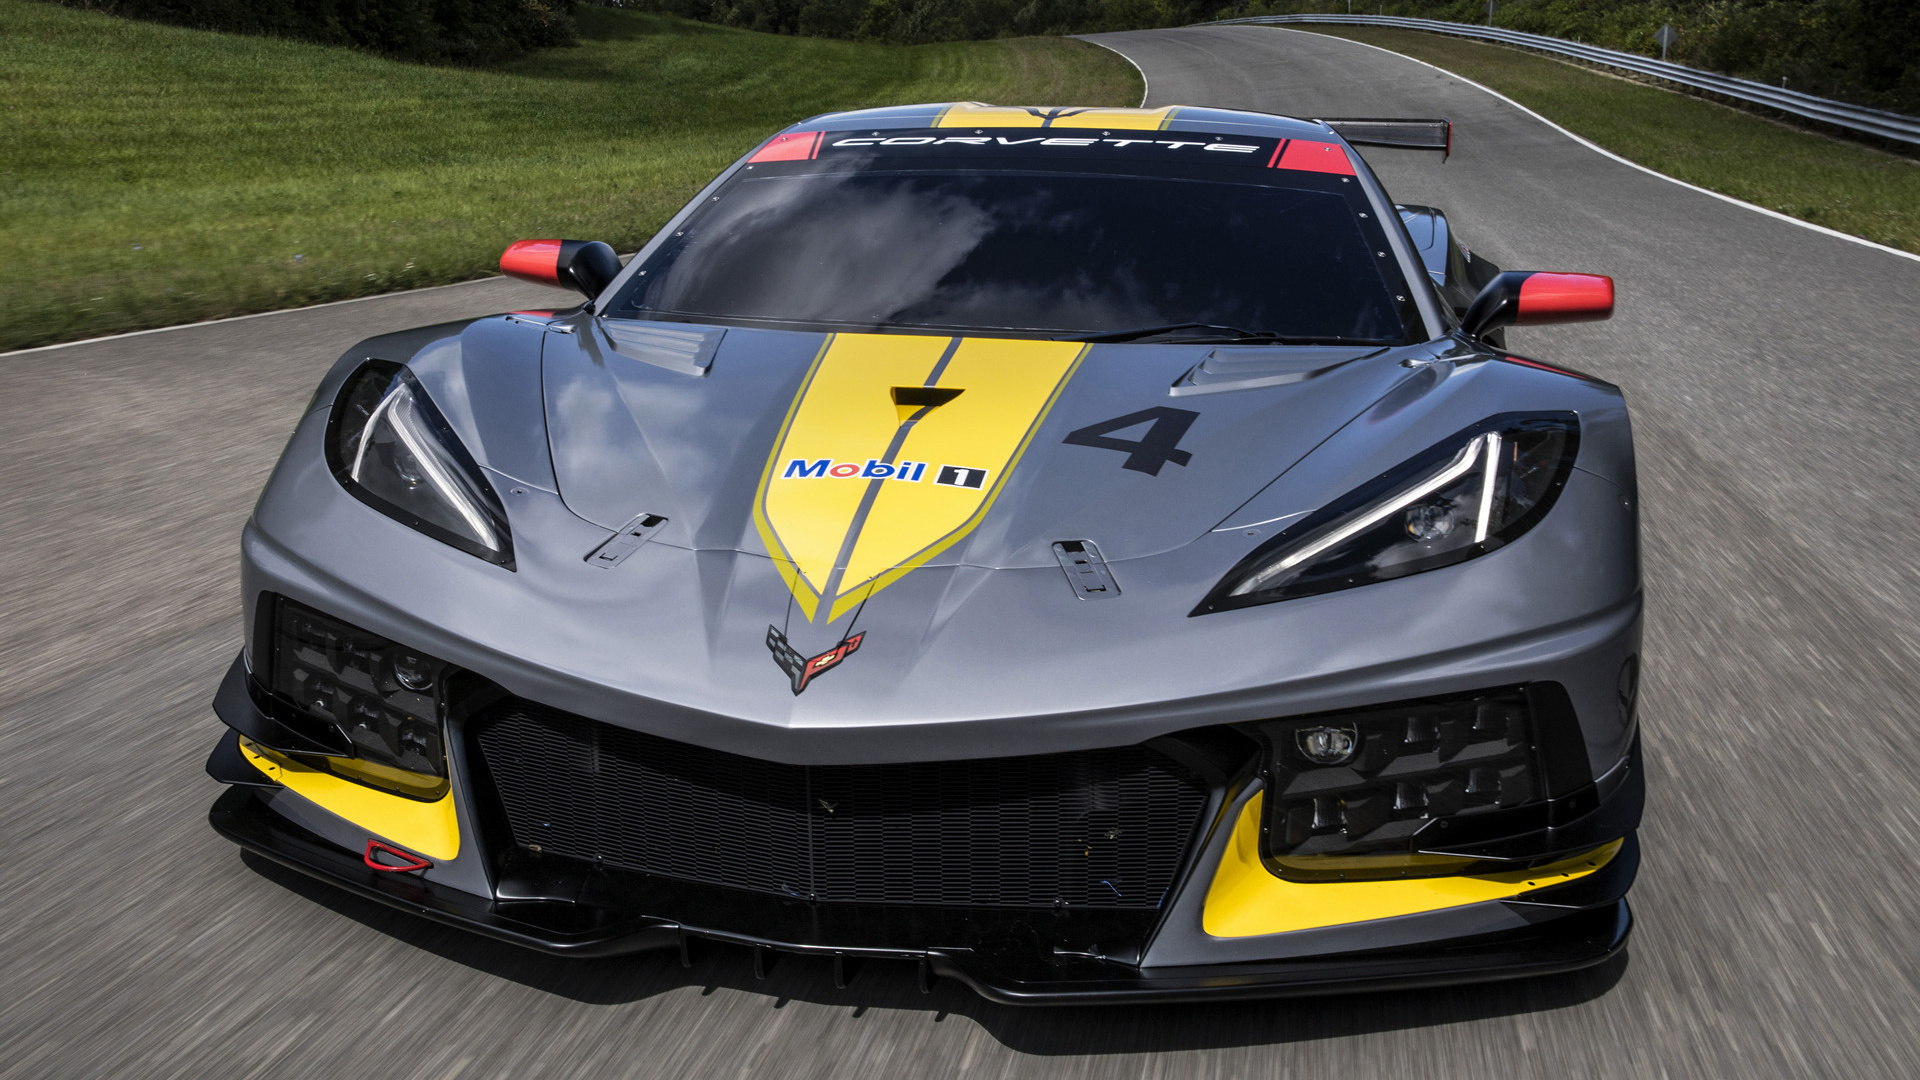 2020 Chevrolet Corvette C8.R - Wallpapers and HD Images ...